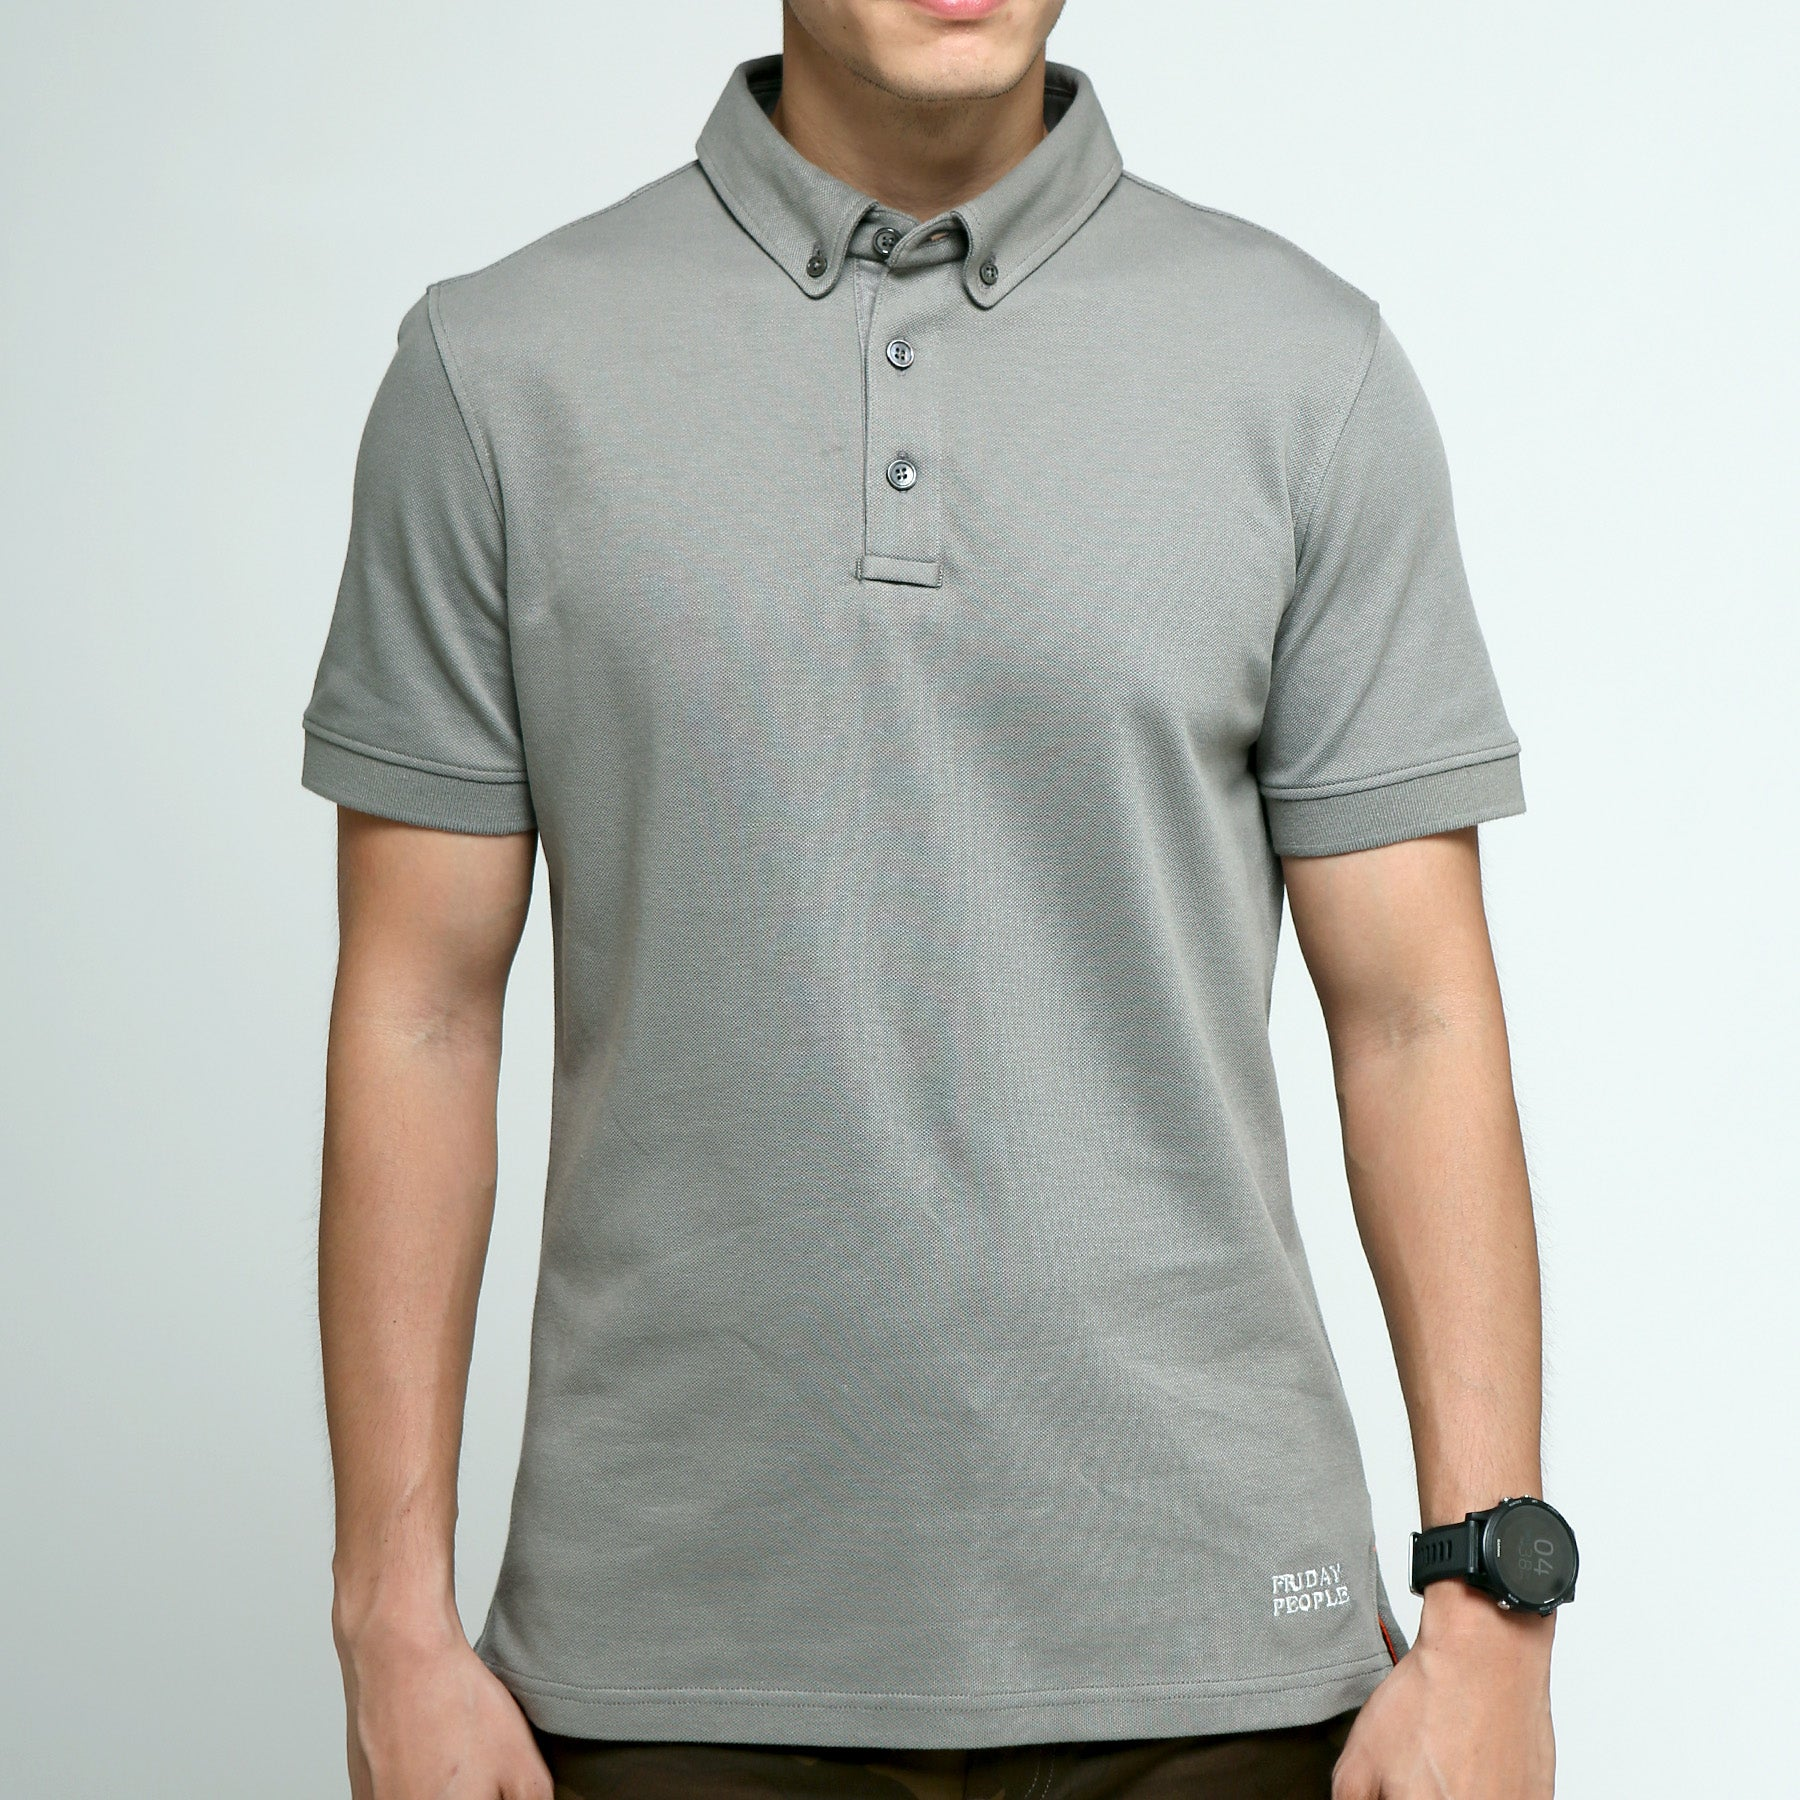 FRIDAY PEOPLE ACTIVE POLO GREY COMFORTABLE